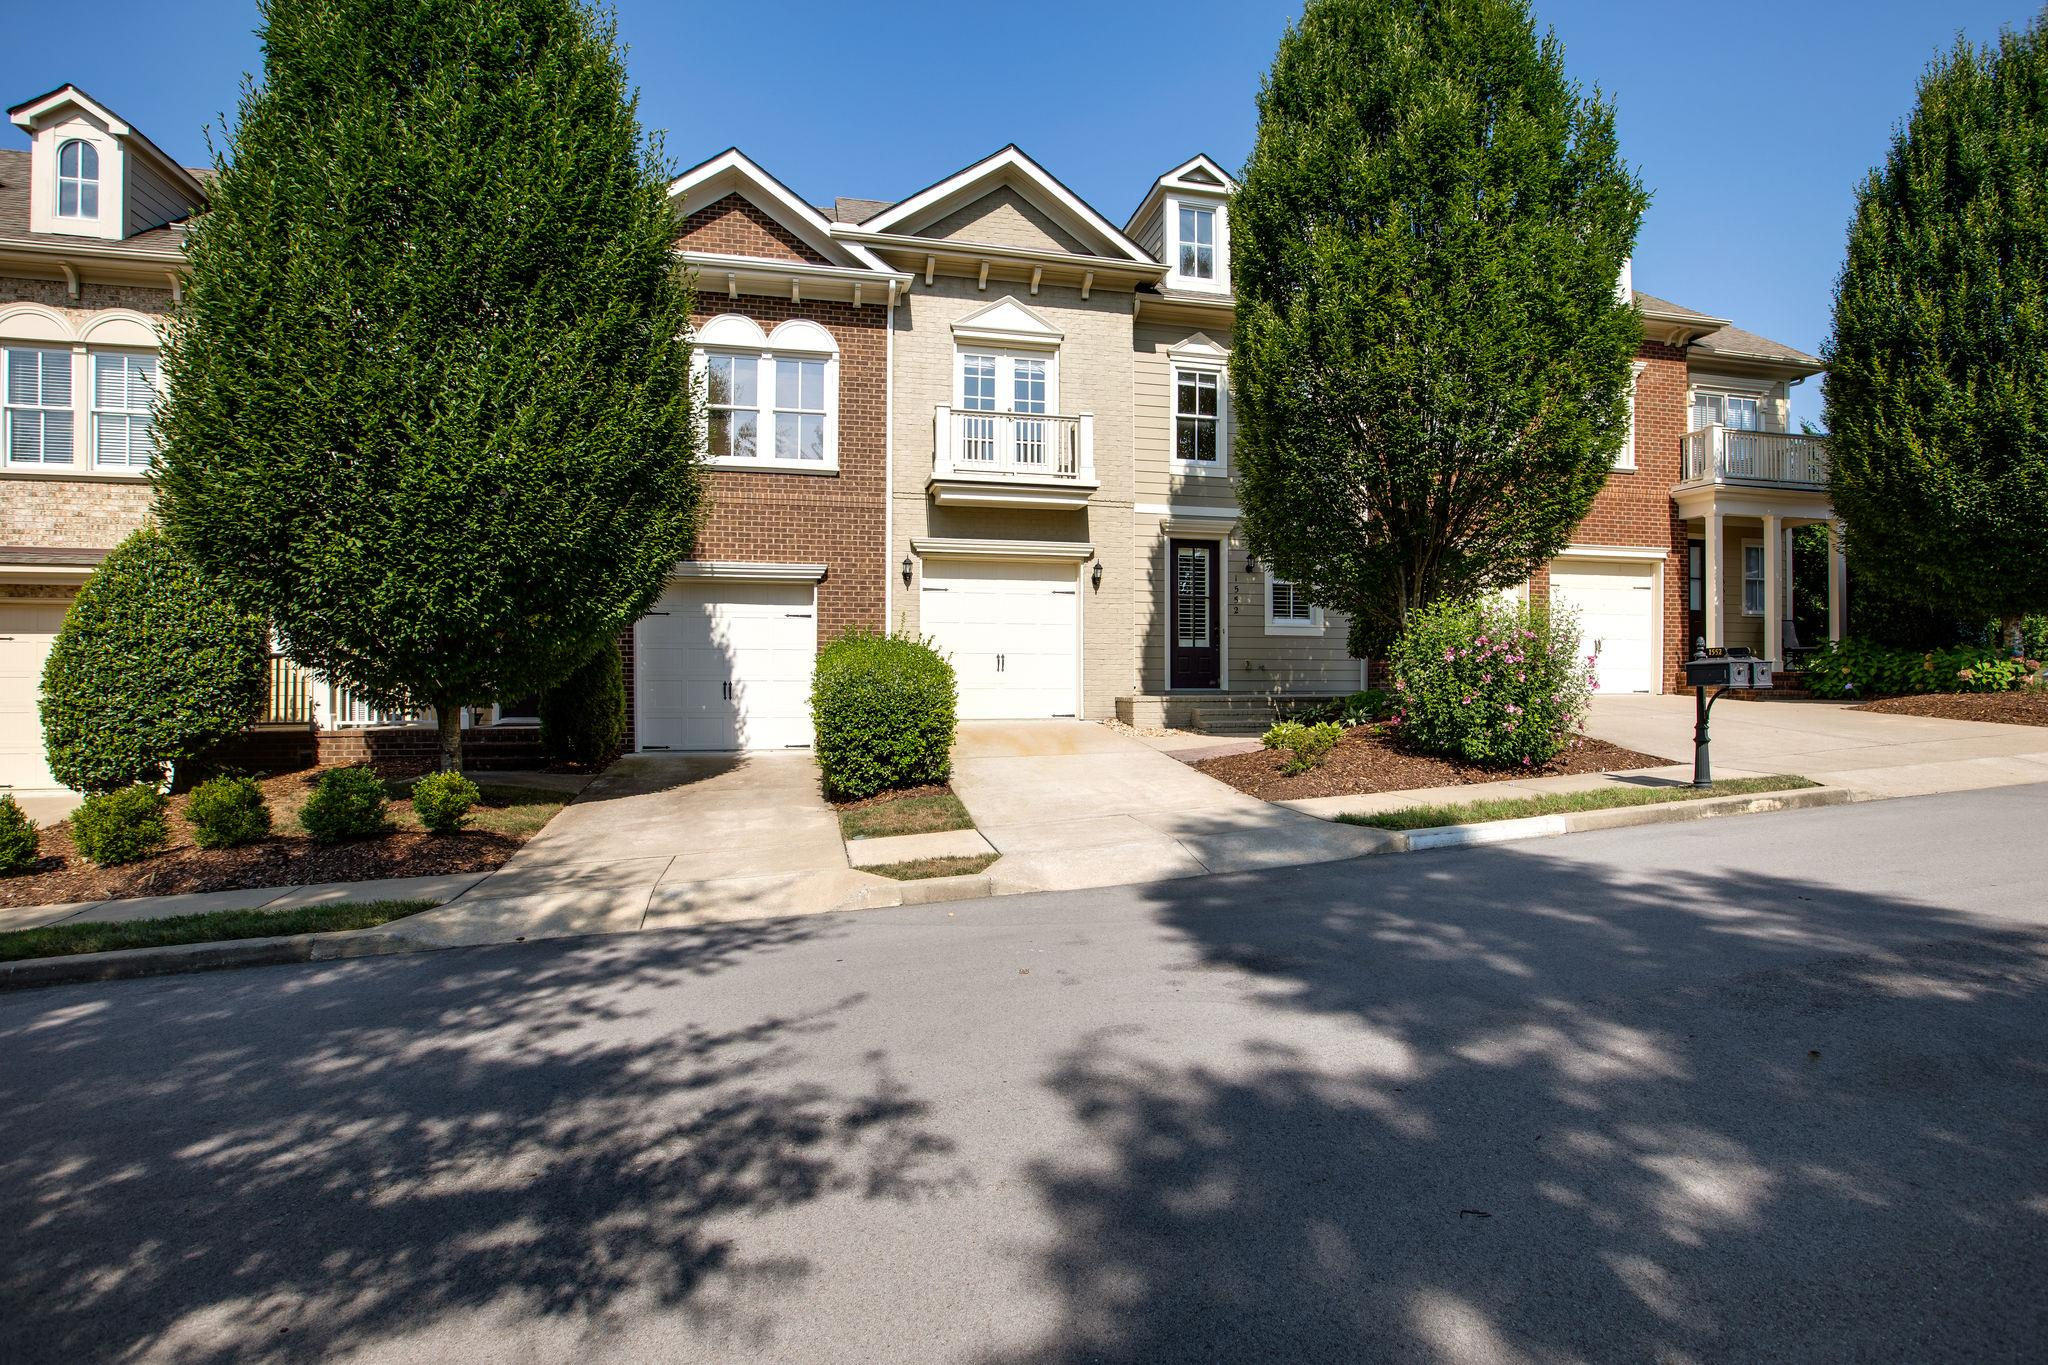 1552 Hampshire Place, Thompsons Station, TN 37179 - Thompsons Station, TN real estate listing